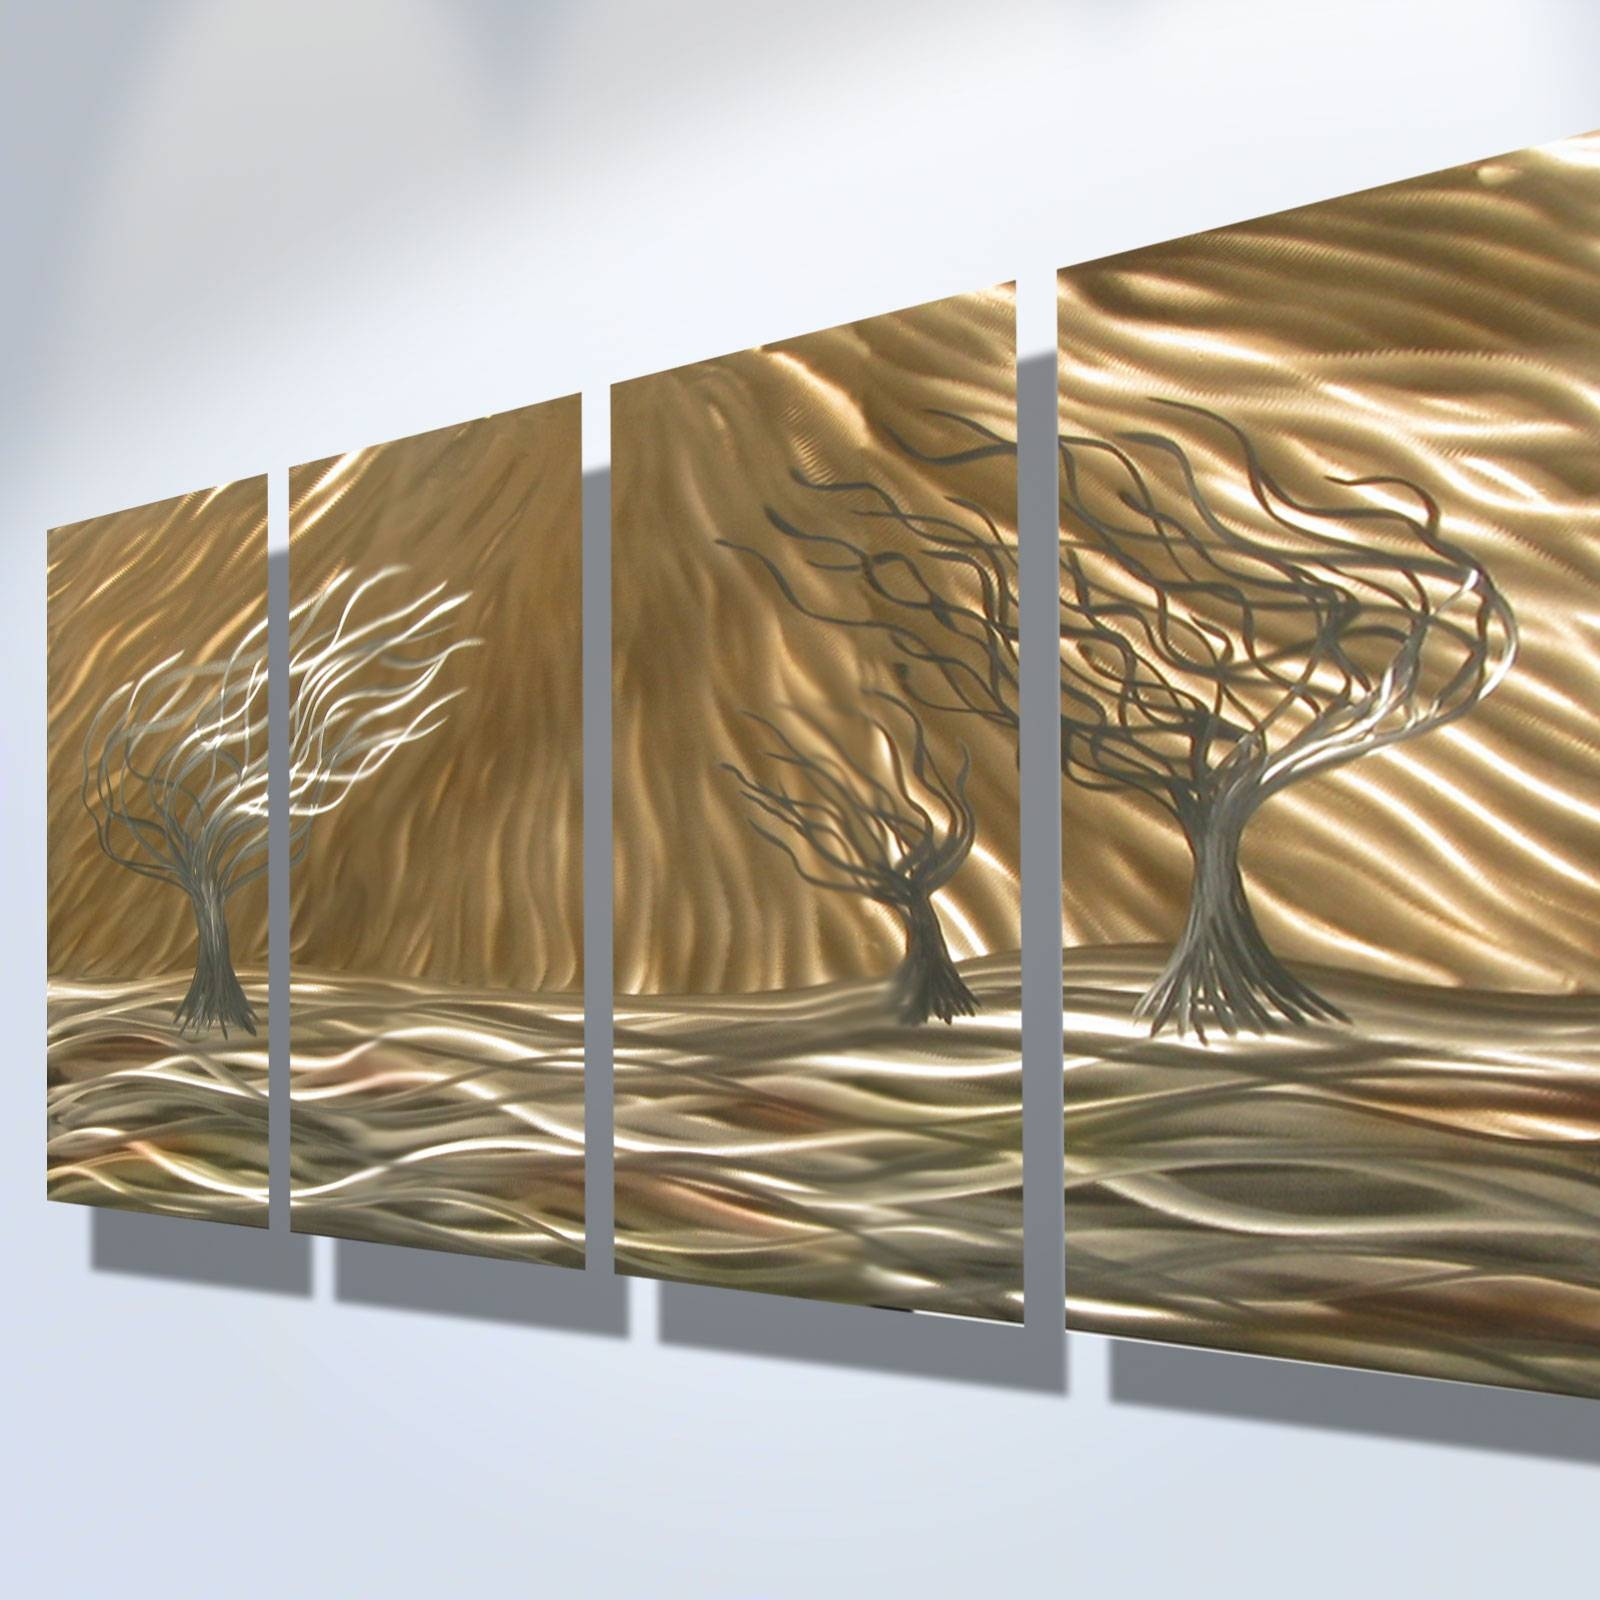 3 Trees 4 Panel – Abstract Metal Wall Art Contemporary Modern Throughout 2018 Bronze Metal Wall Art (Gallery 8 of 20)